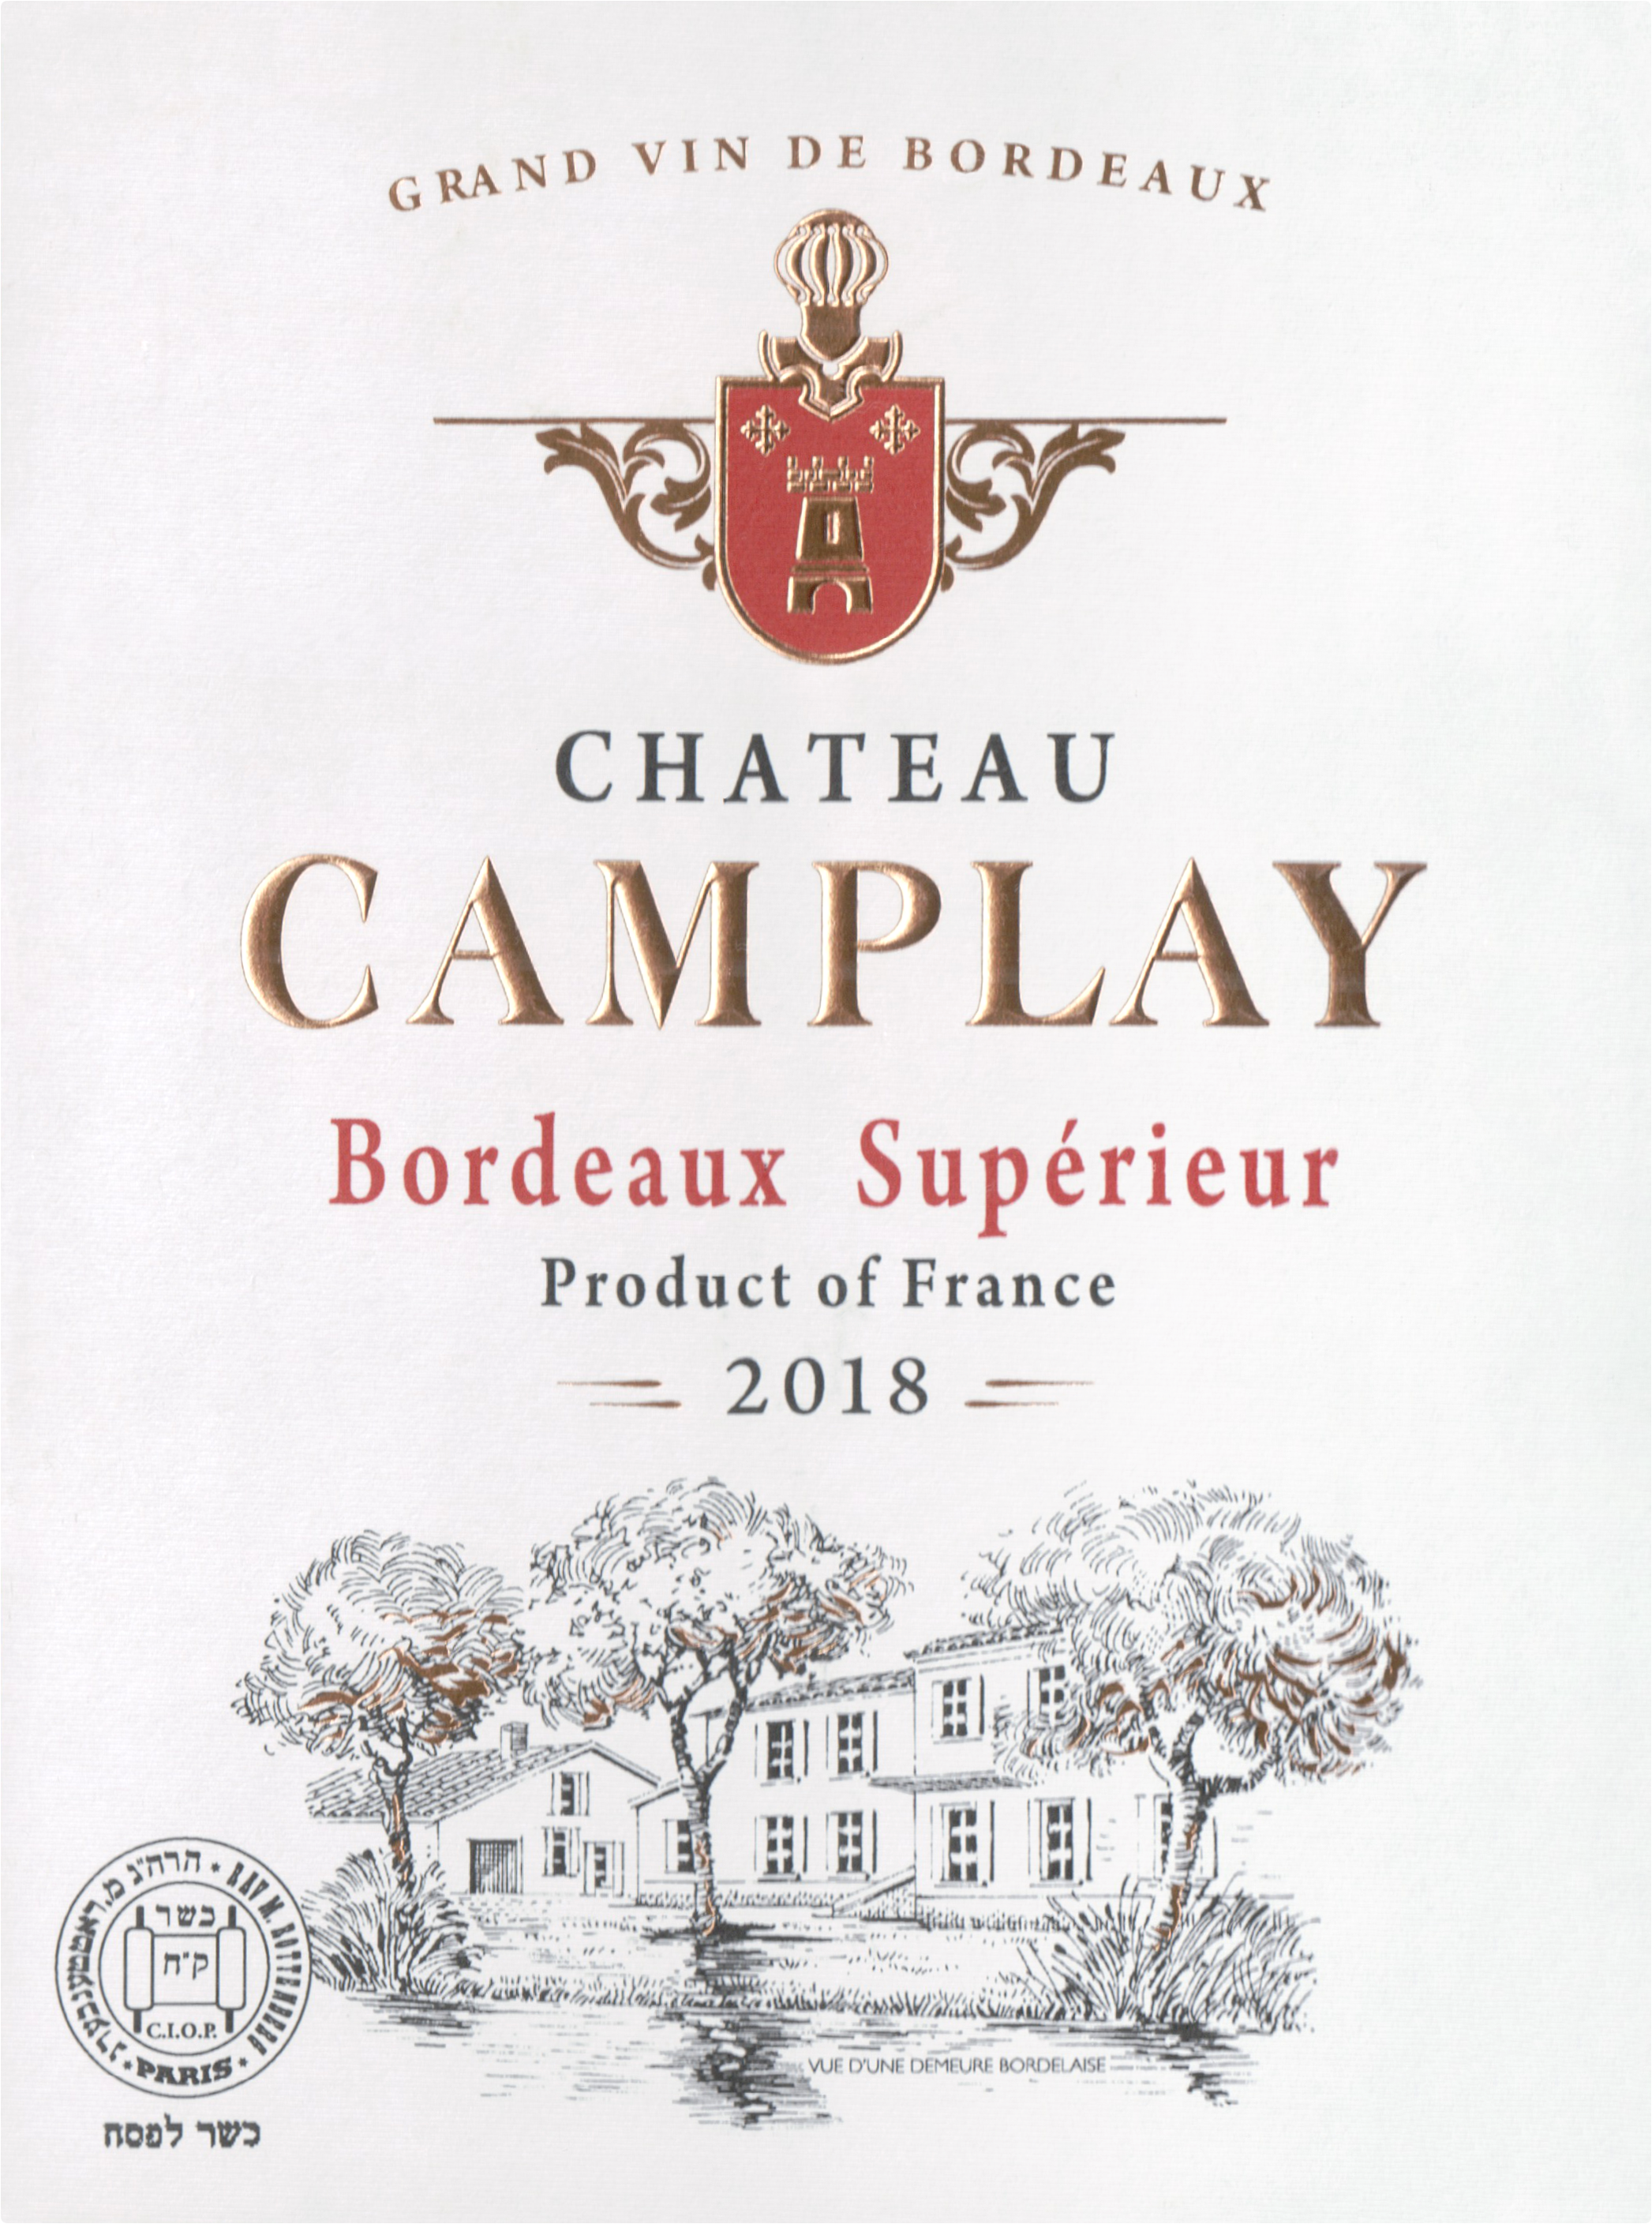 Chateau Camplay 2018